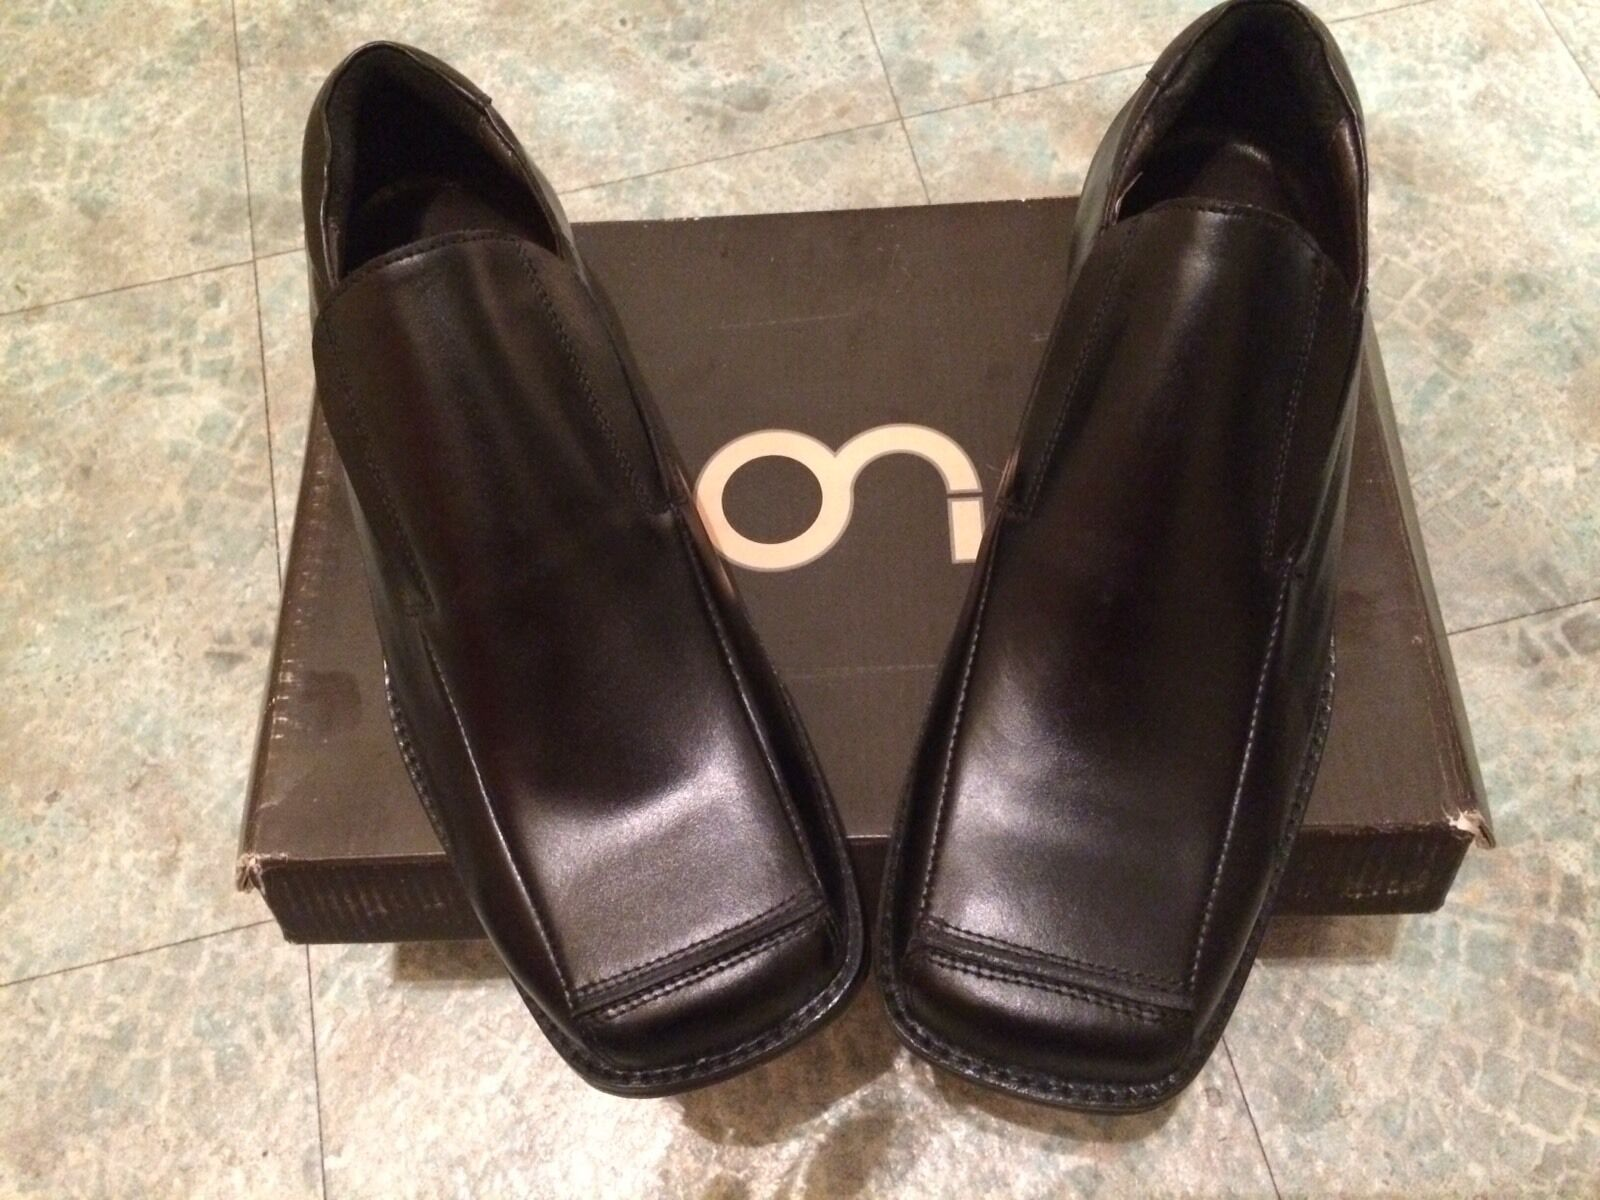 Man/Woman Men's Squire Toe Shoes Size 9 Known Durable service discount price Known 9 for its excellent quality 587c4a